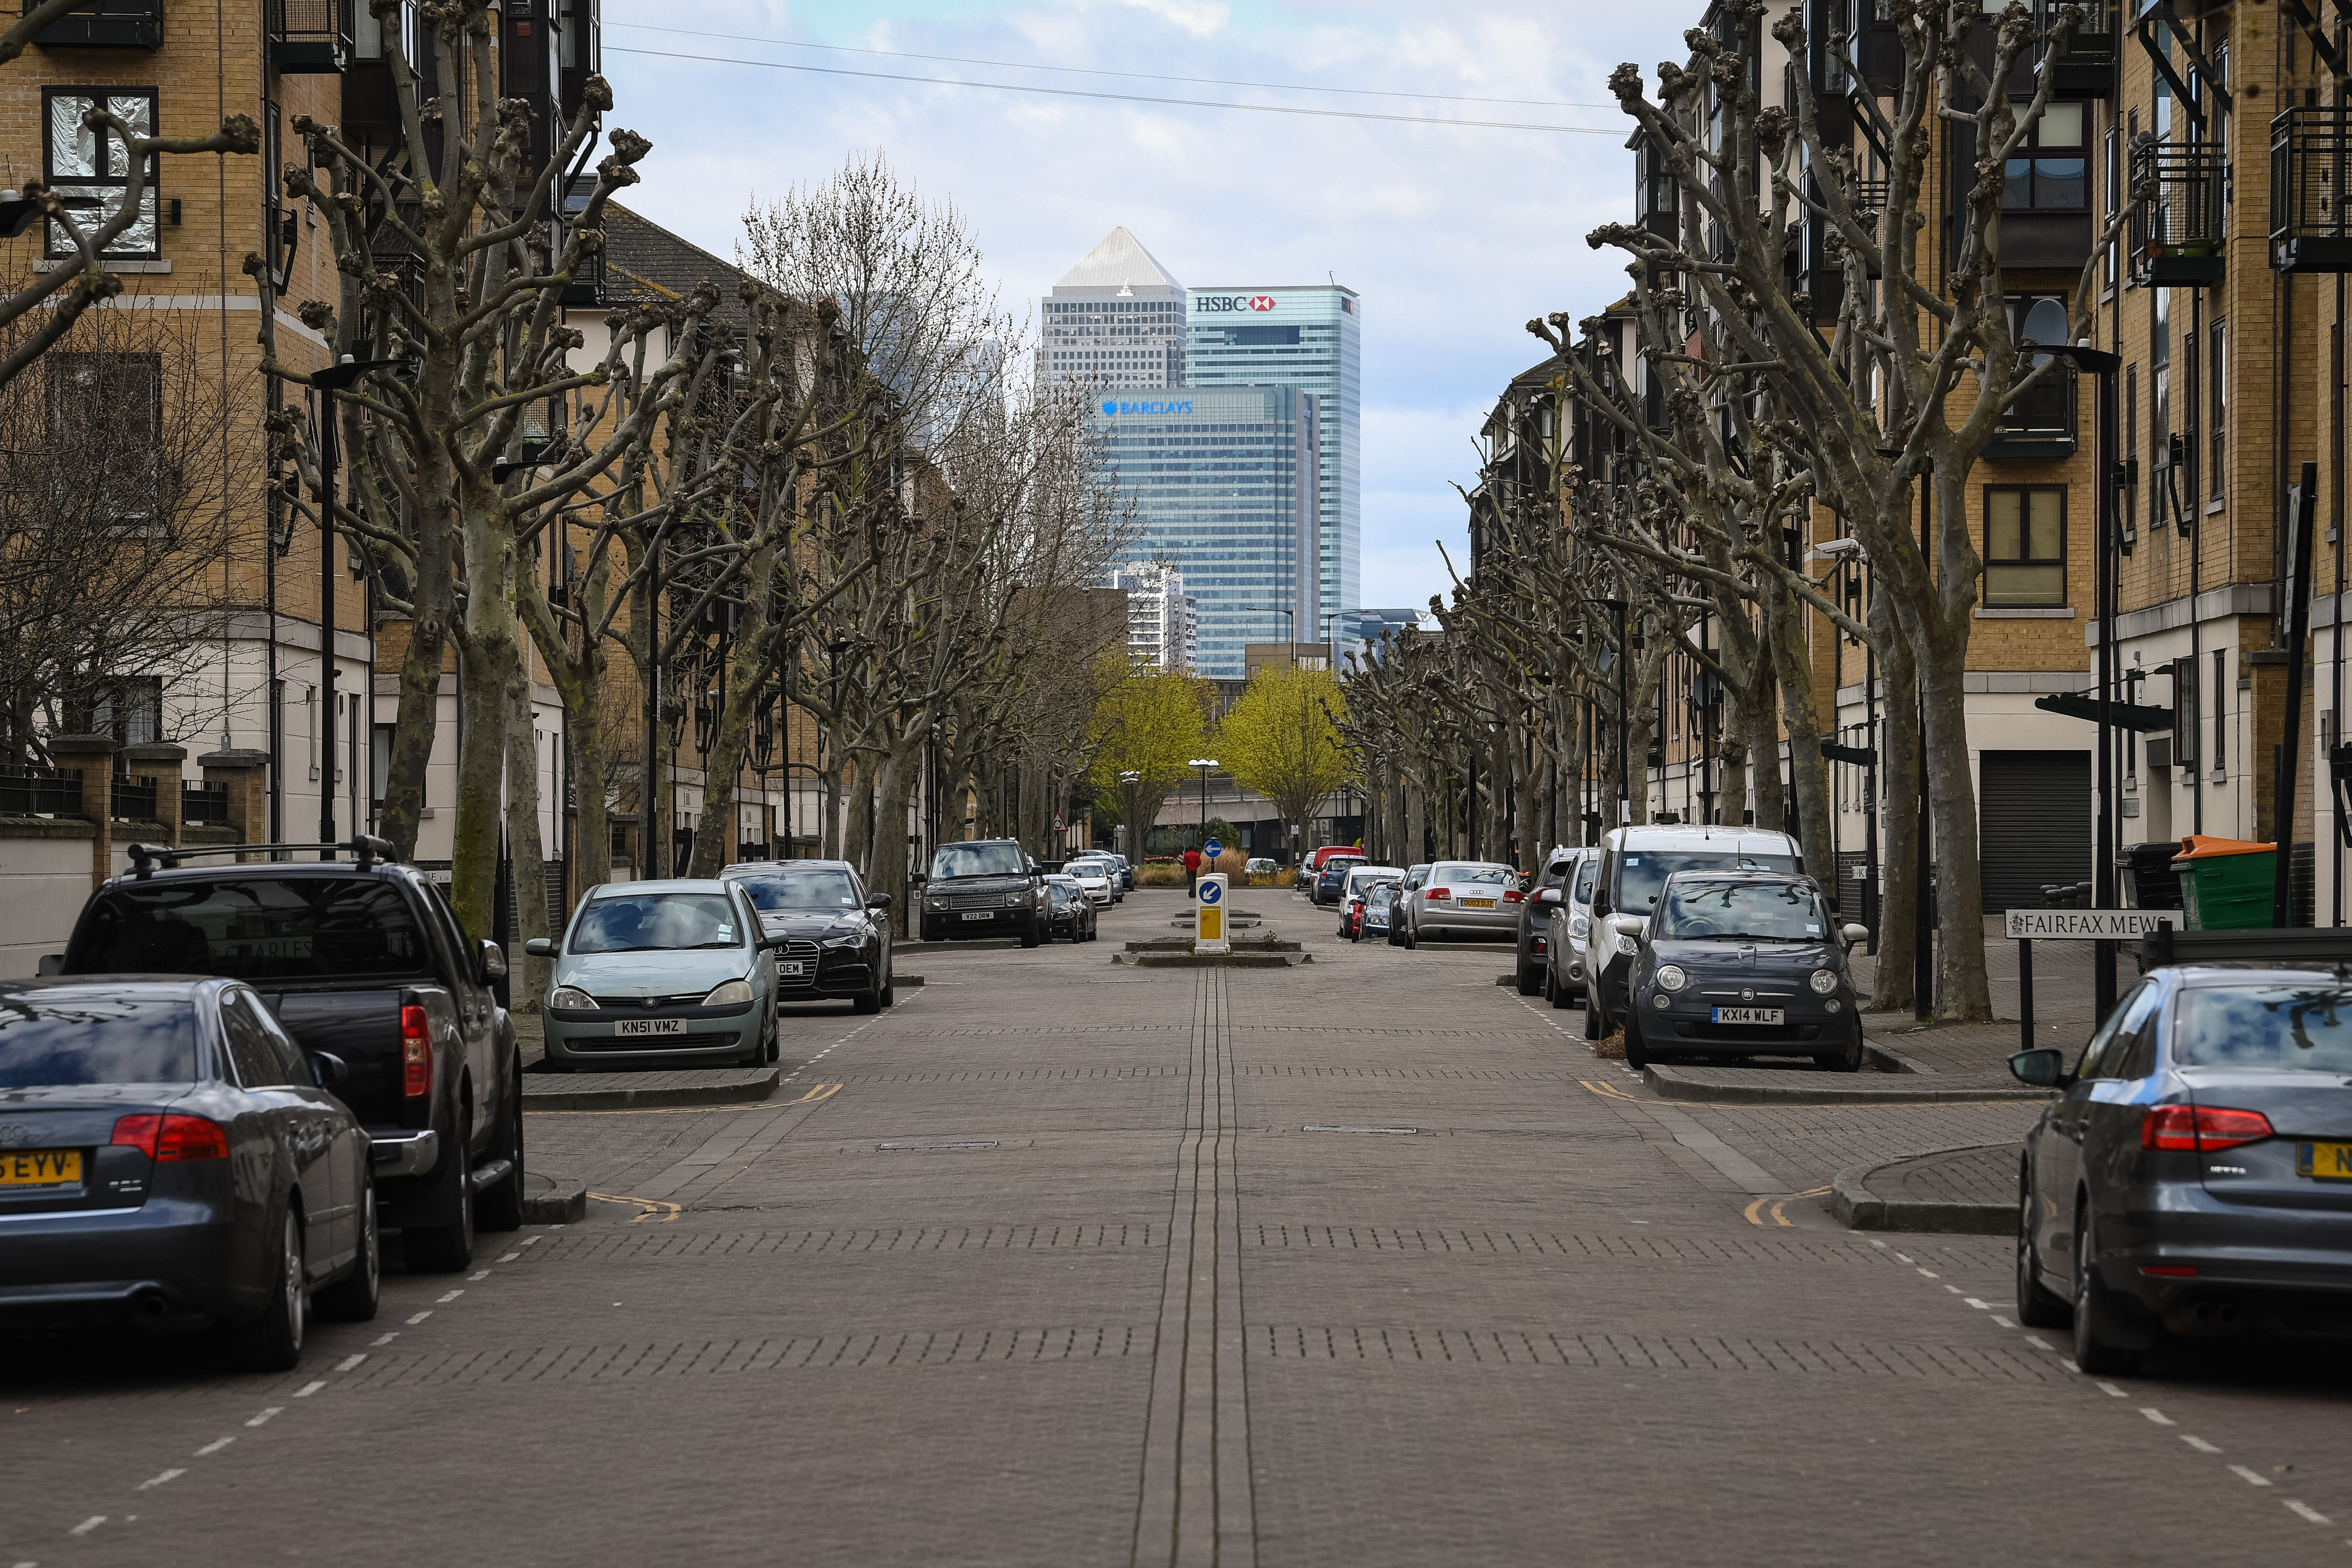 Empty streets within sight of Canary Wharf, in east London, as the UK continues in lockdown to help curb the spread of the coronavirus.